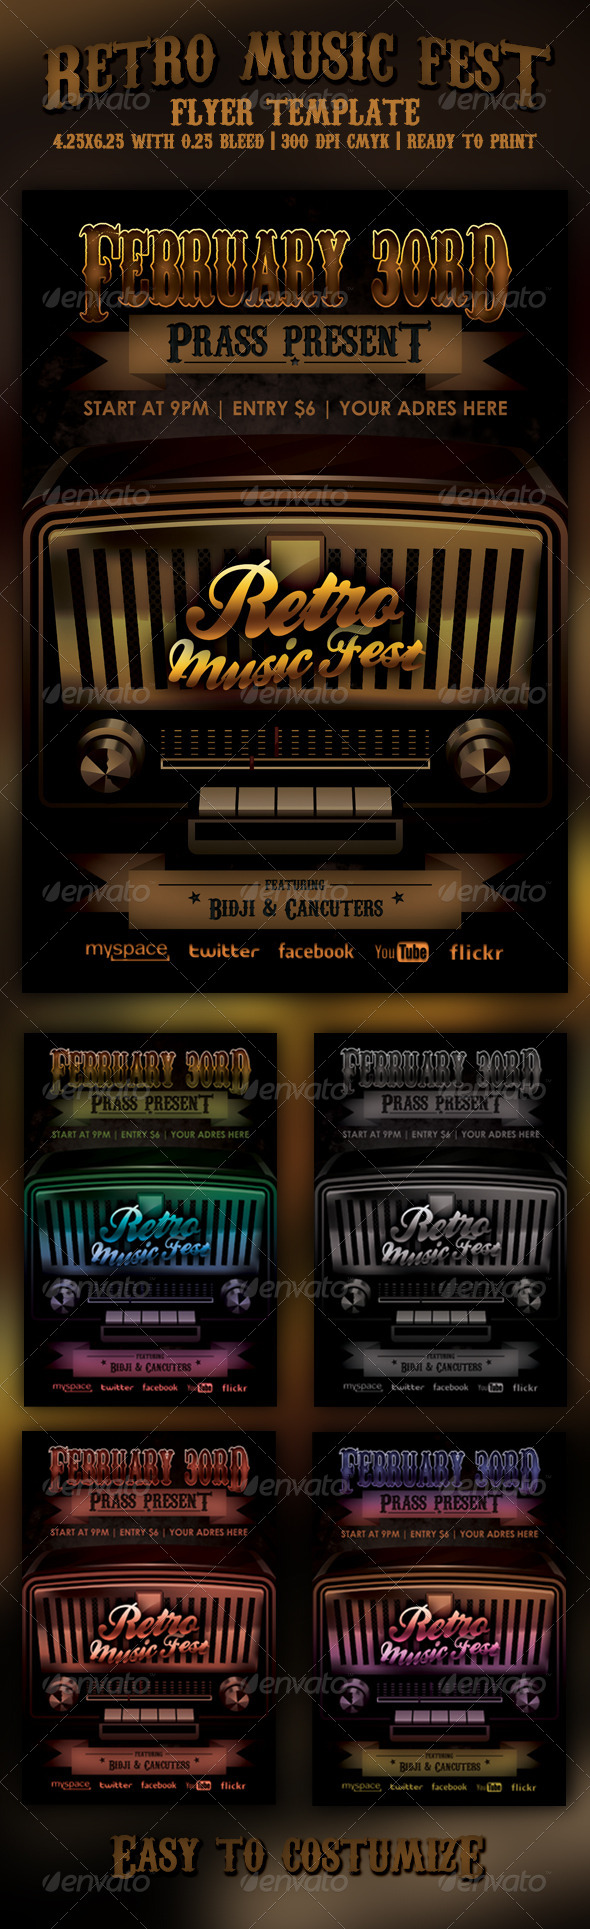 Retro Music Fest Flyer Template - Concerts Events